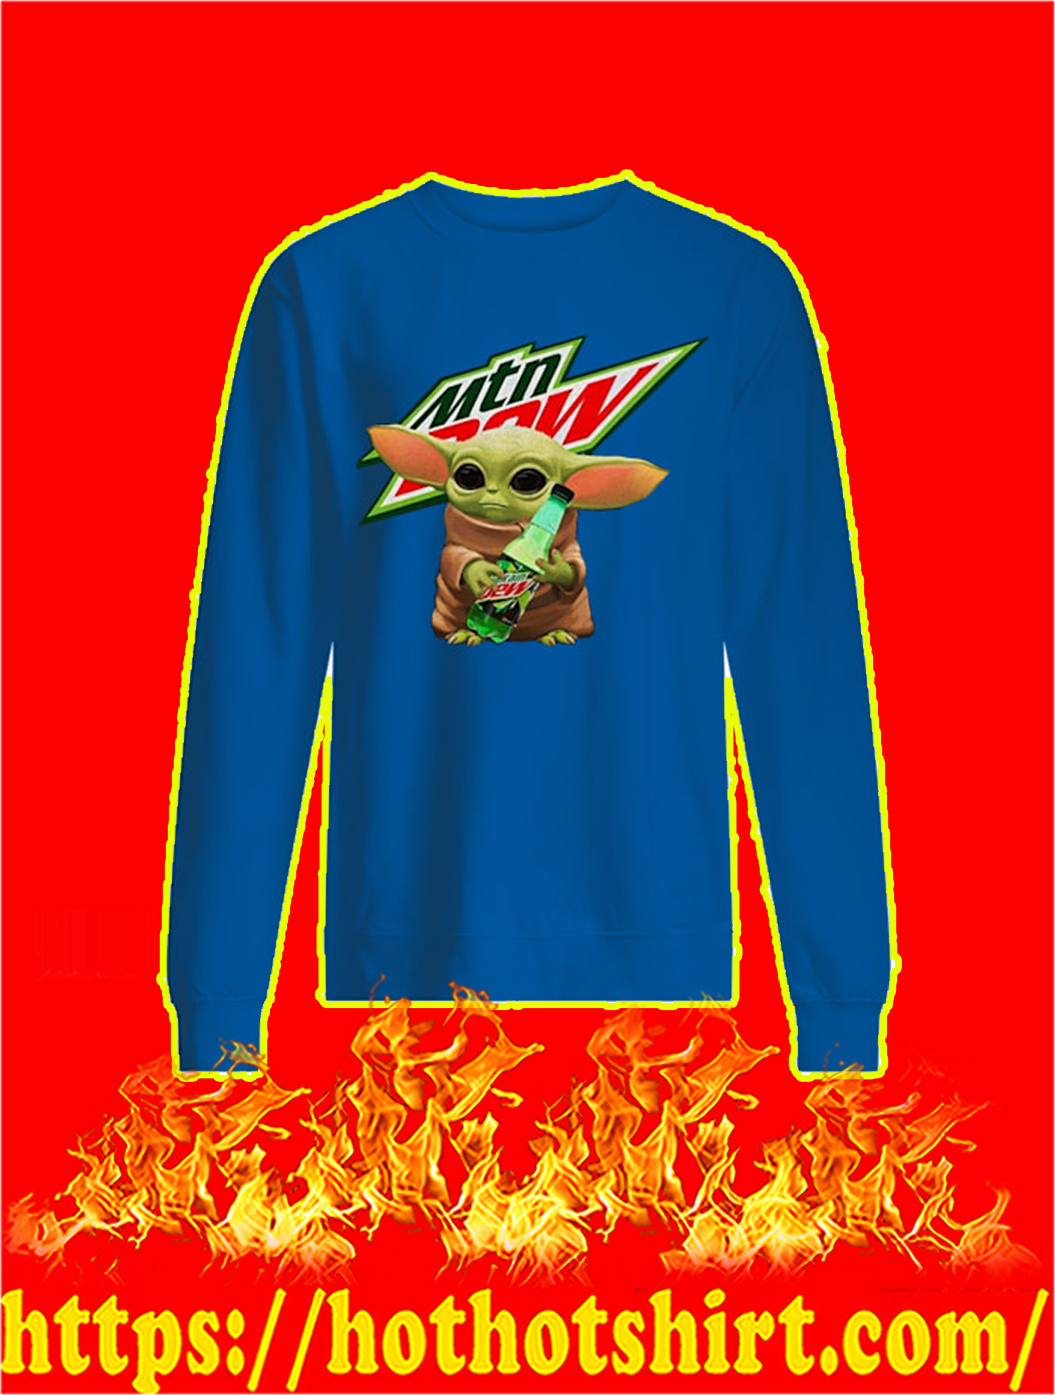 Baby Yoda Mountain Dew sweatshirt